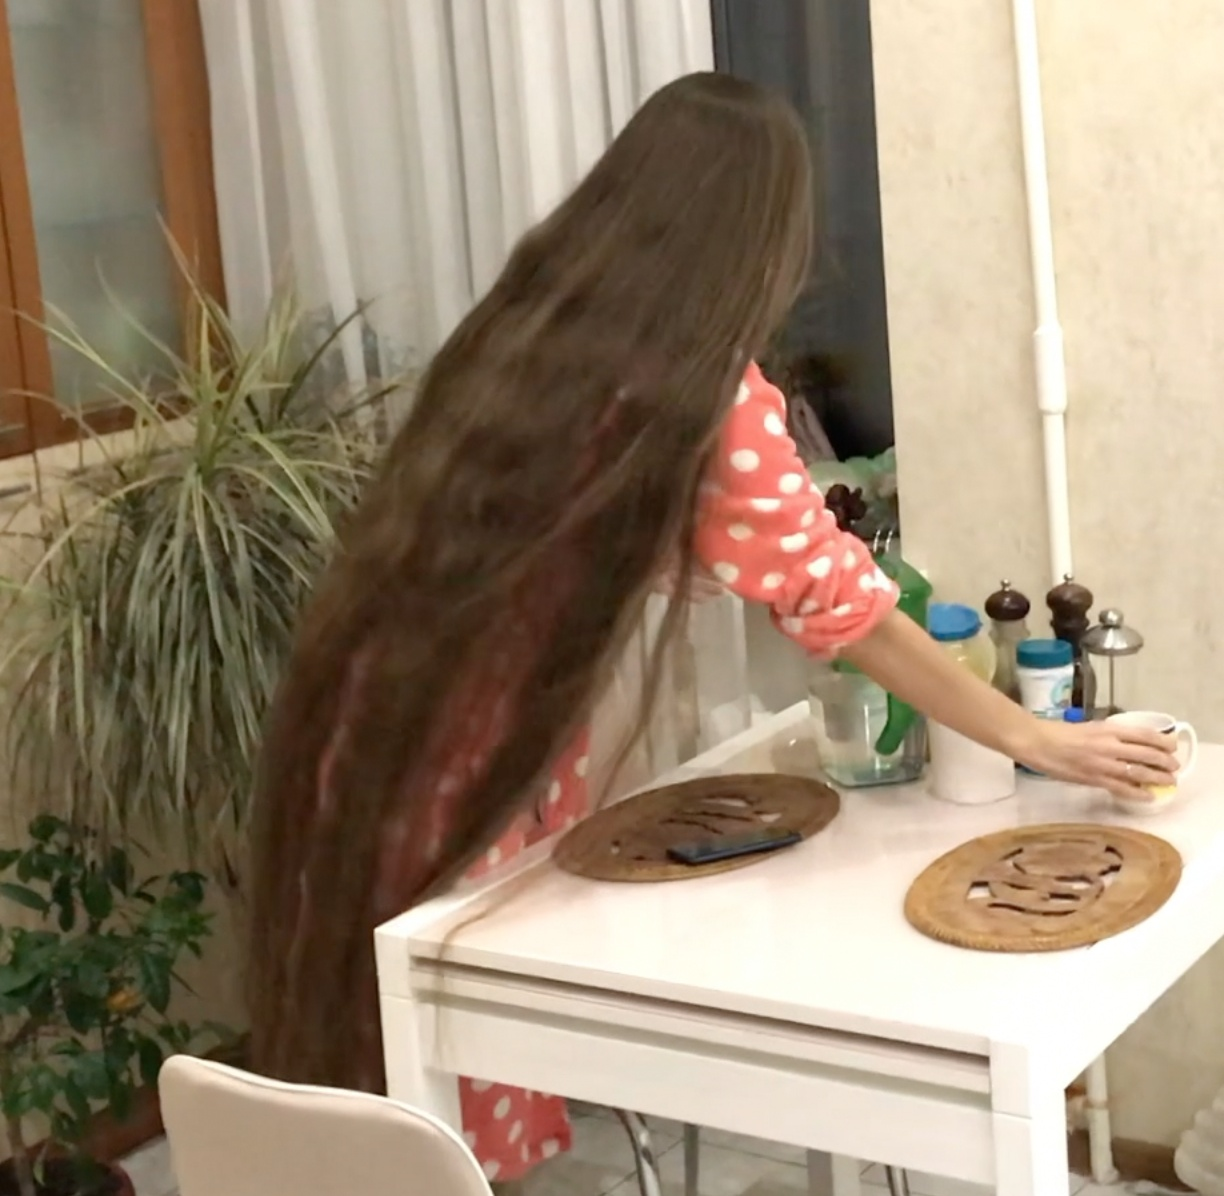 VIDEO - Rapunzel at home